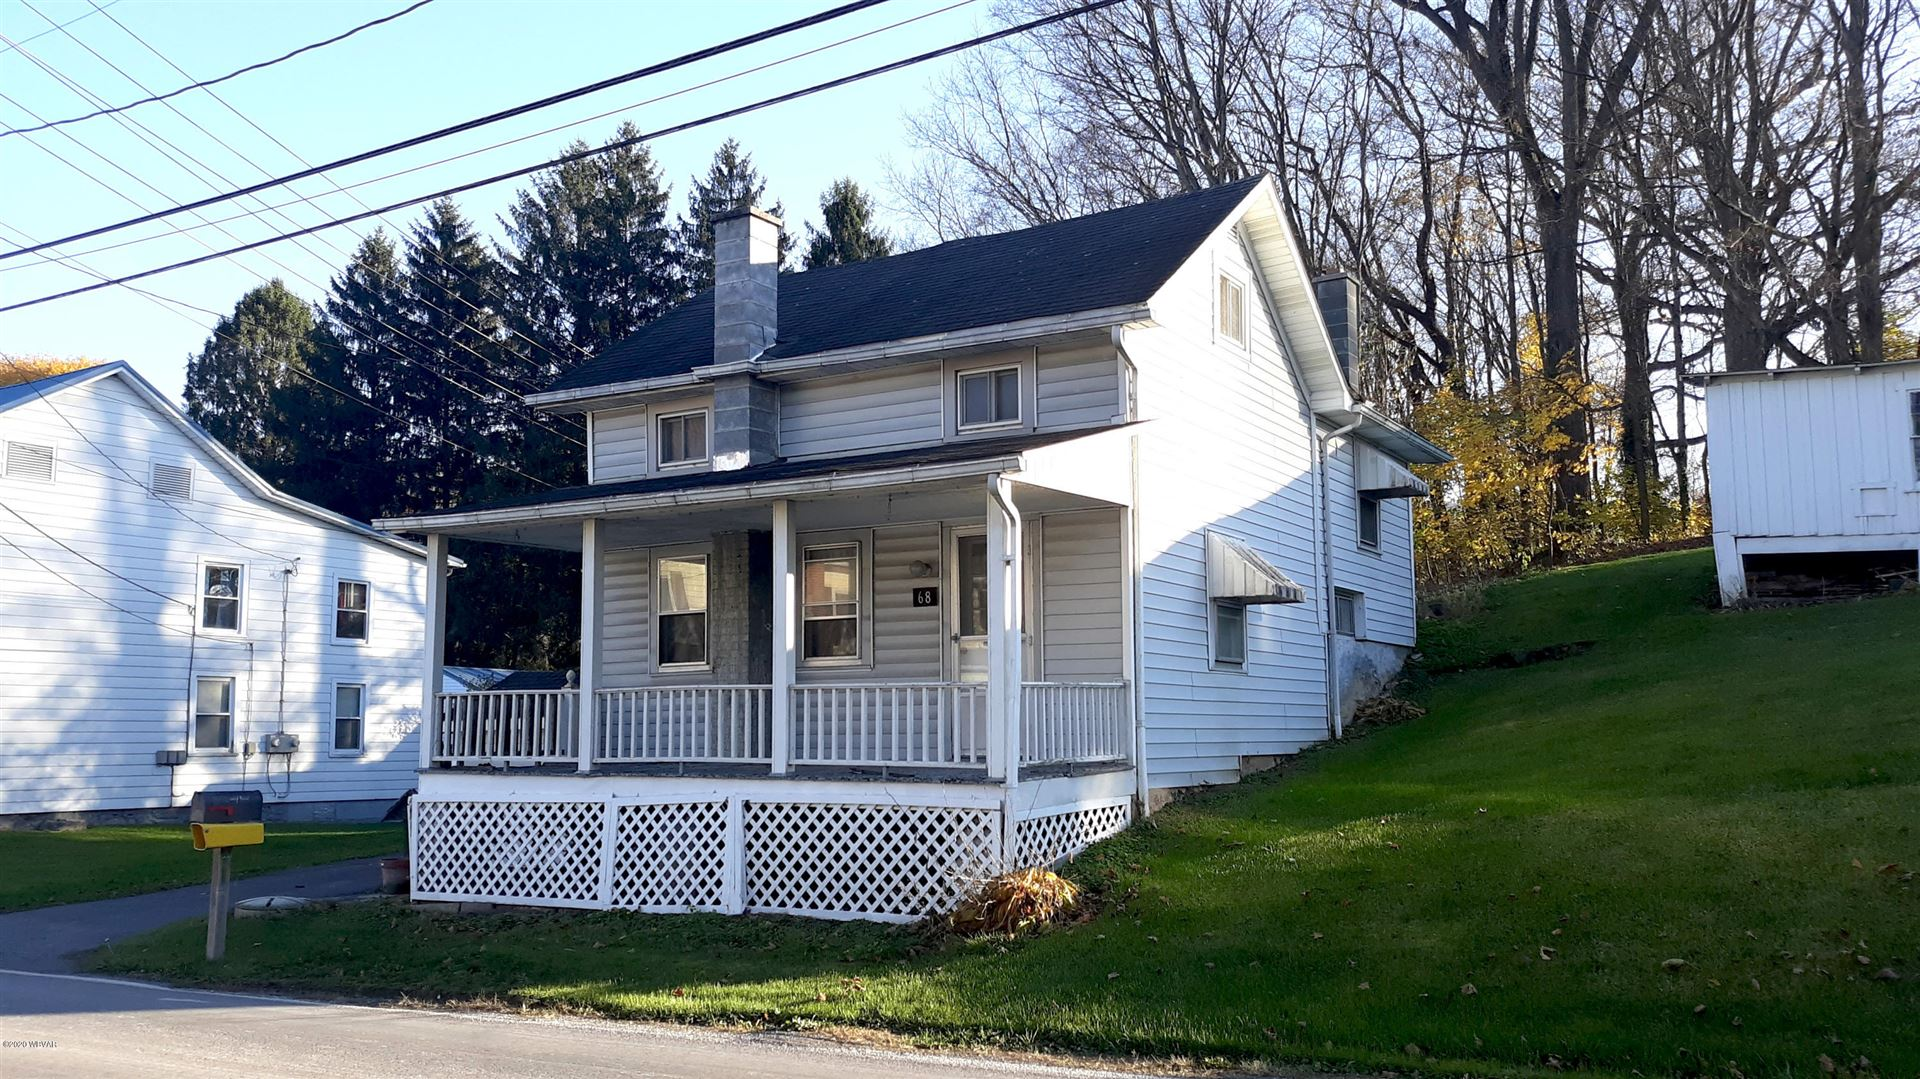 68 FAIRGROUND ROAD, Mill Hall, PA 17751 - #: WB-91483